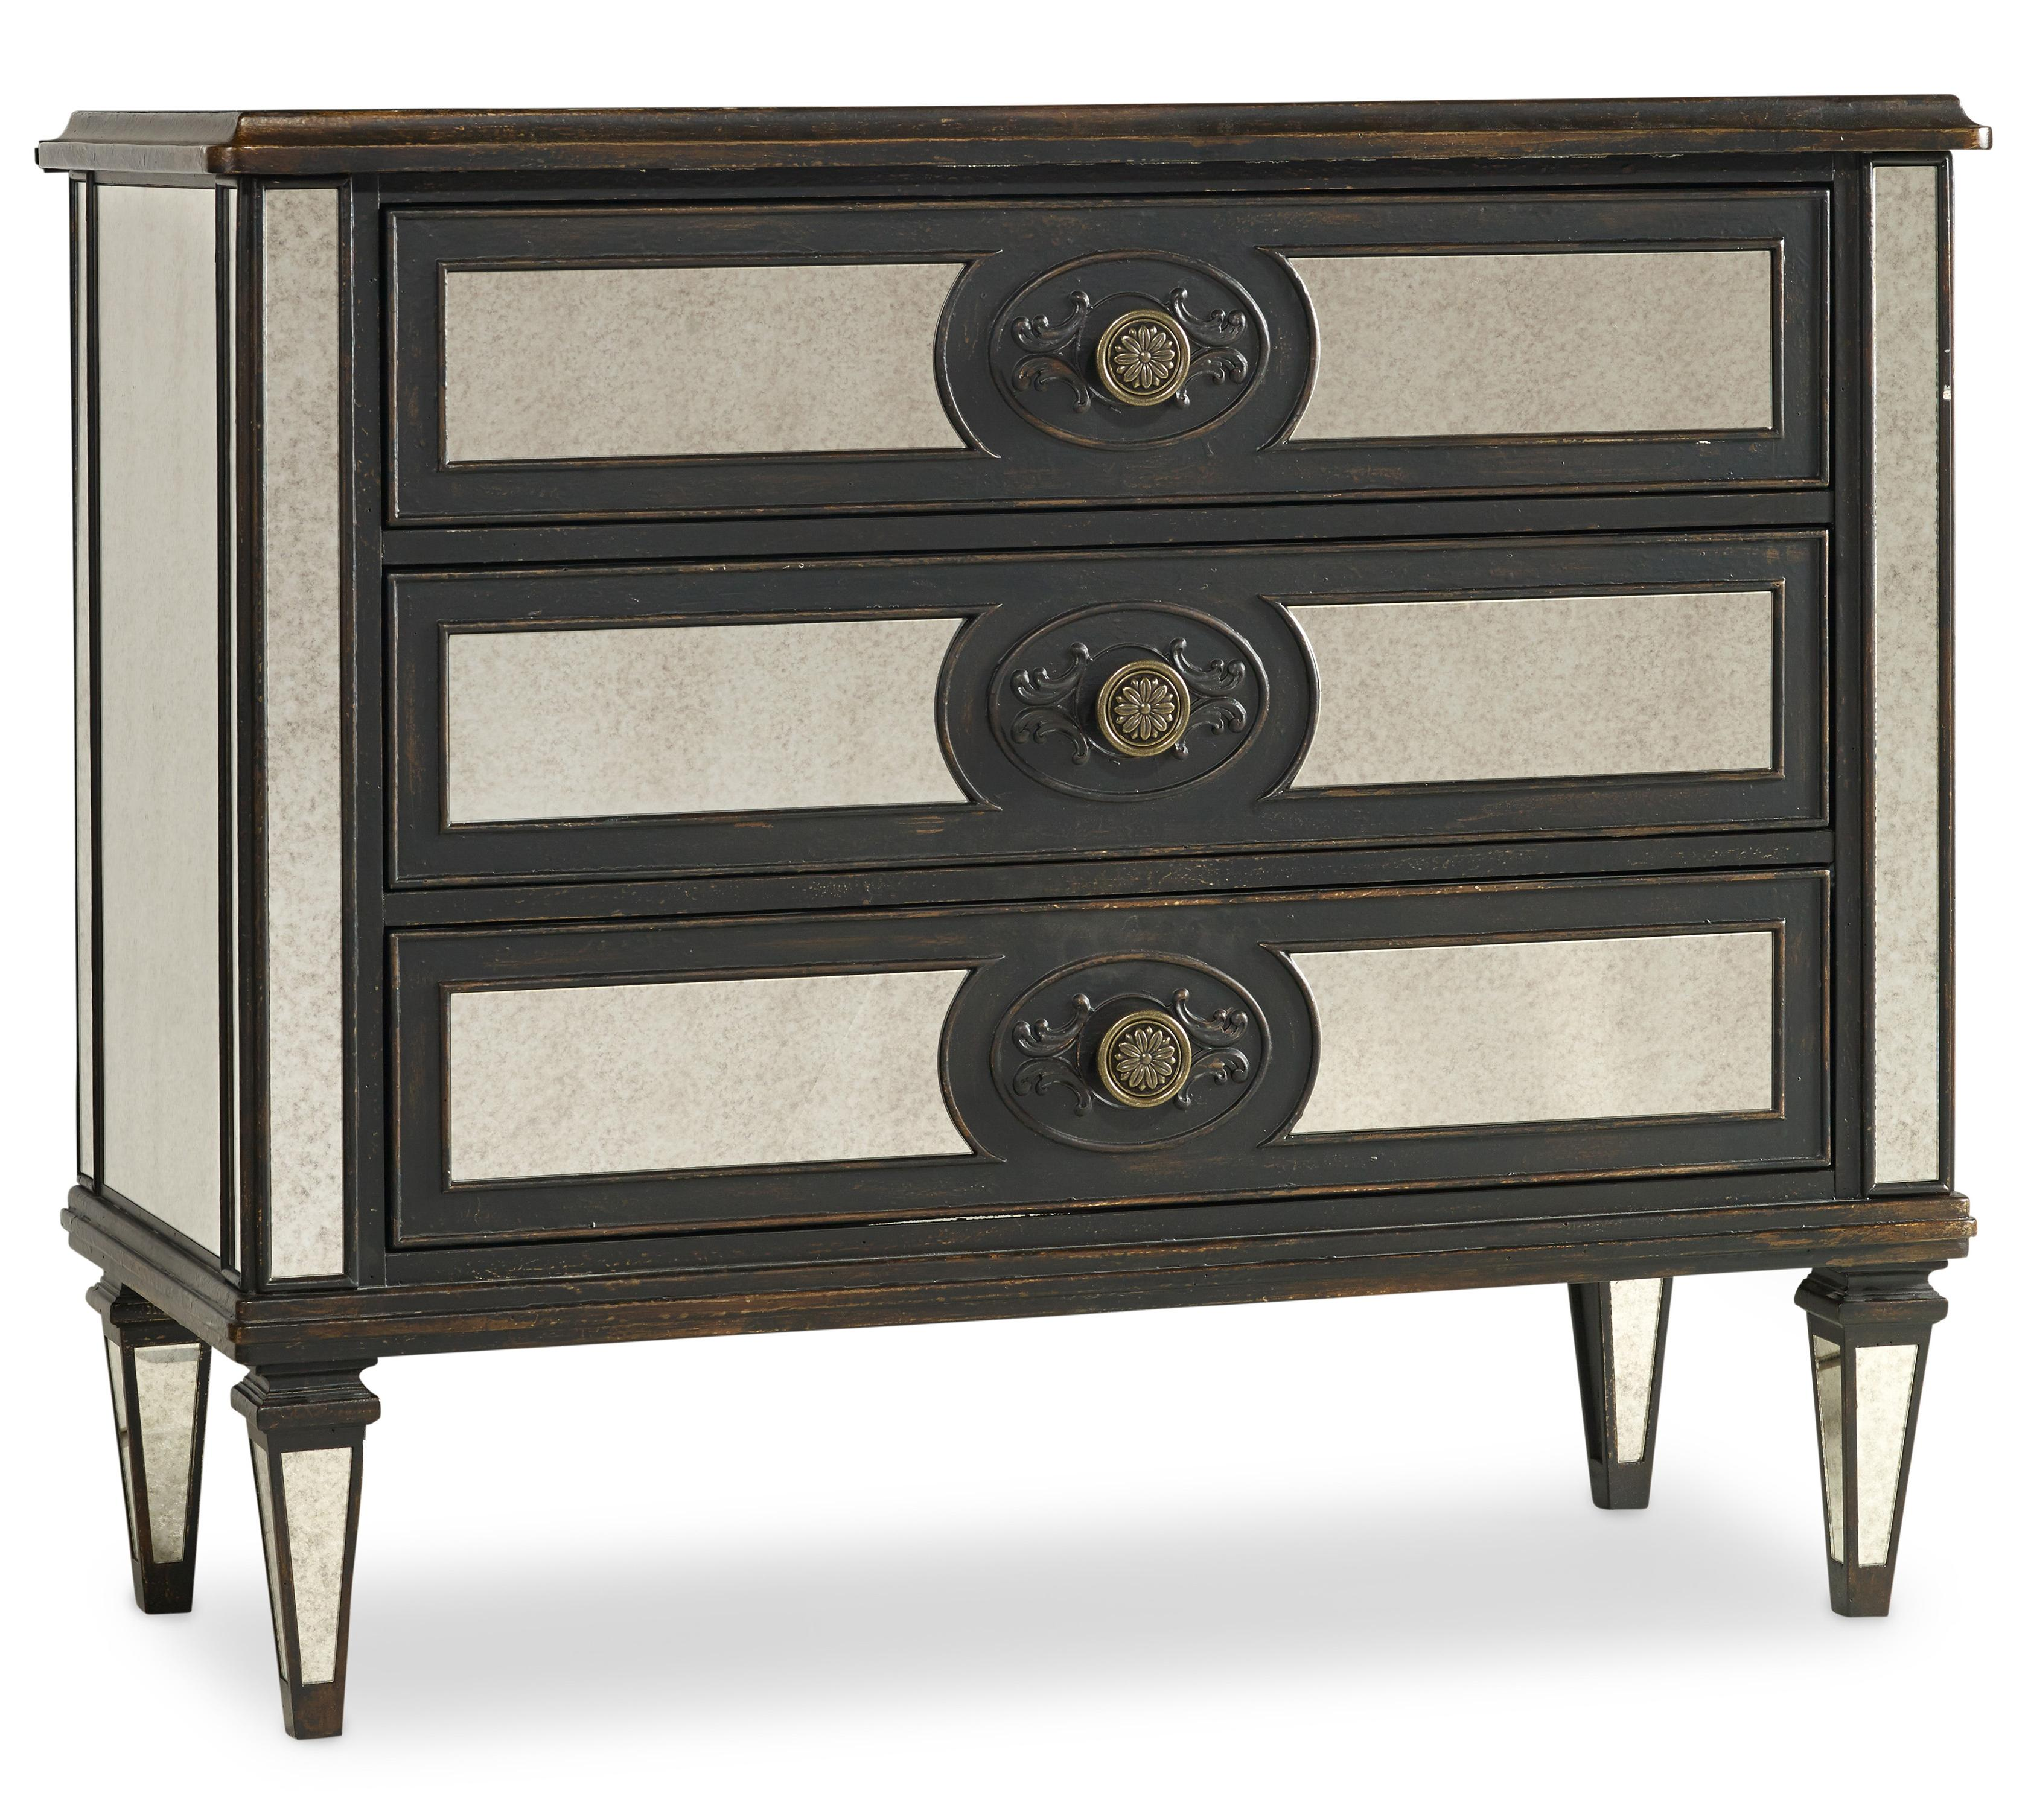 Hooker Furniture Living Room Accents Mirror Accented Chest - Item Number: 5218-85001